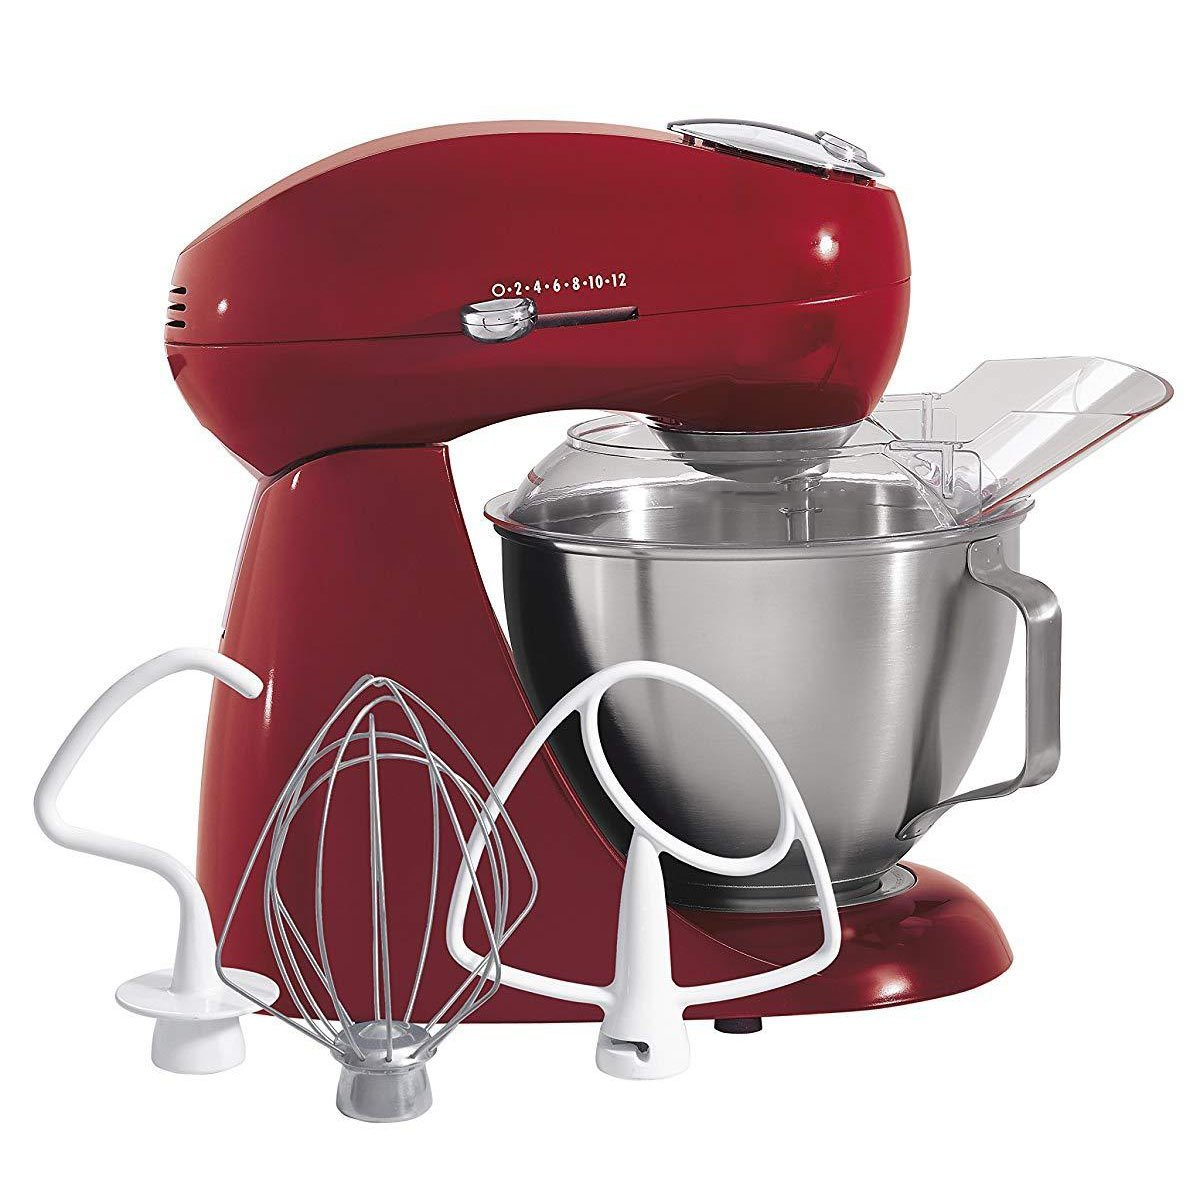 All-Metal Stand Mixer - Red